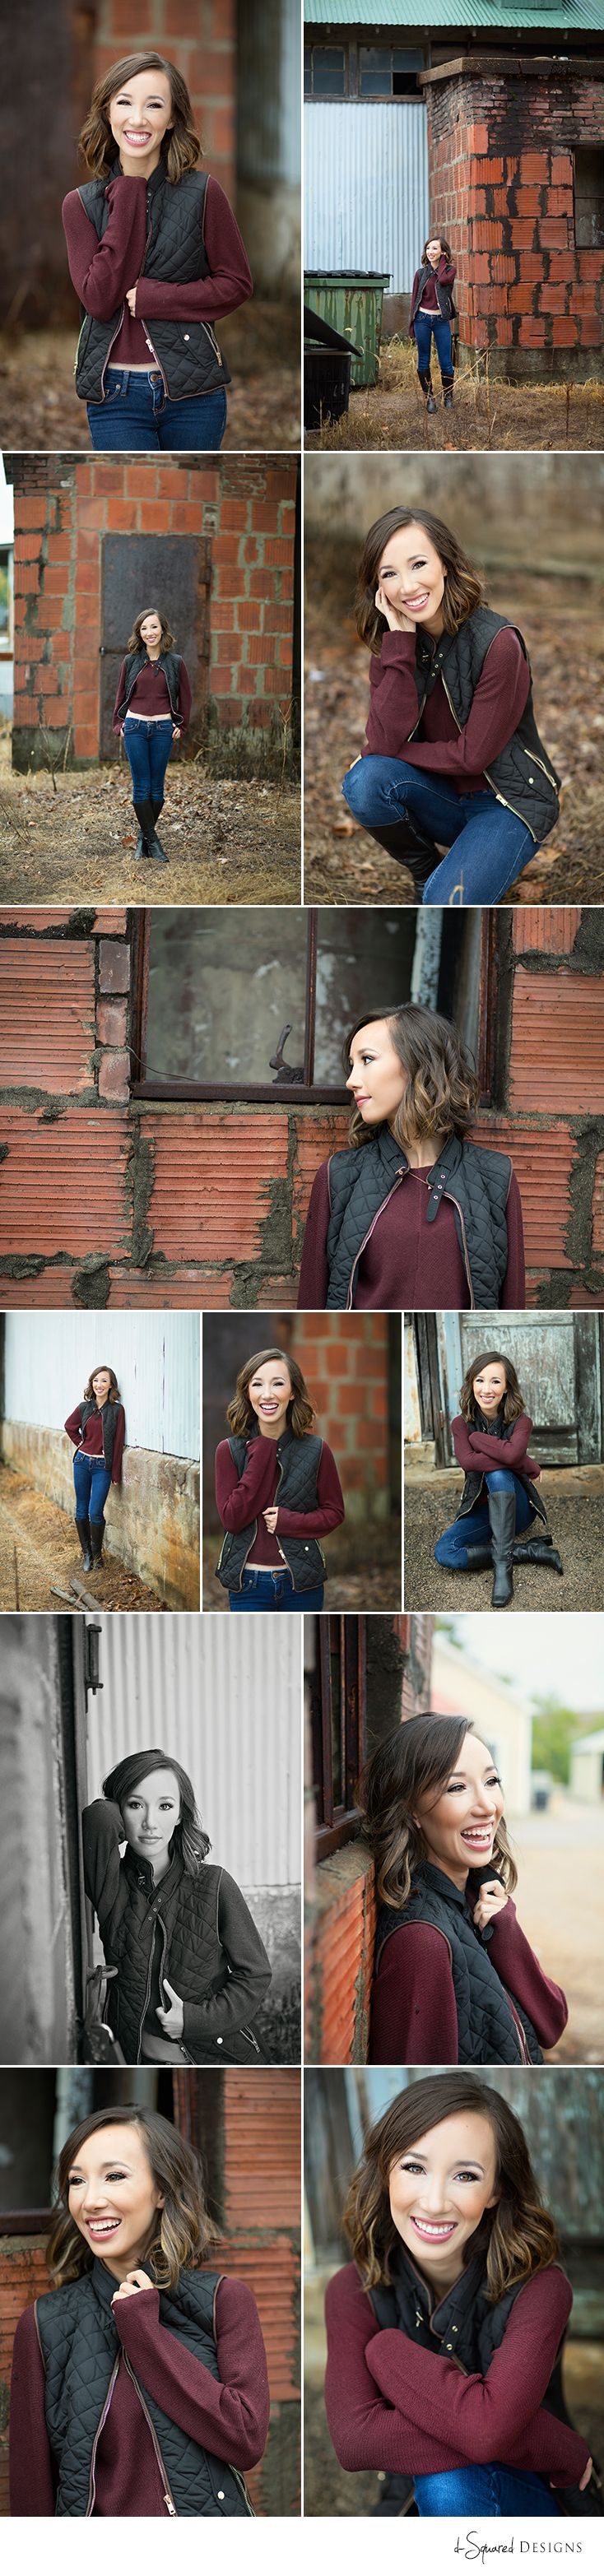 d-Squared Designs St. Louis, MO Senior Photography. Urban senior photography. Brick wall. Gorgeous senior.